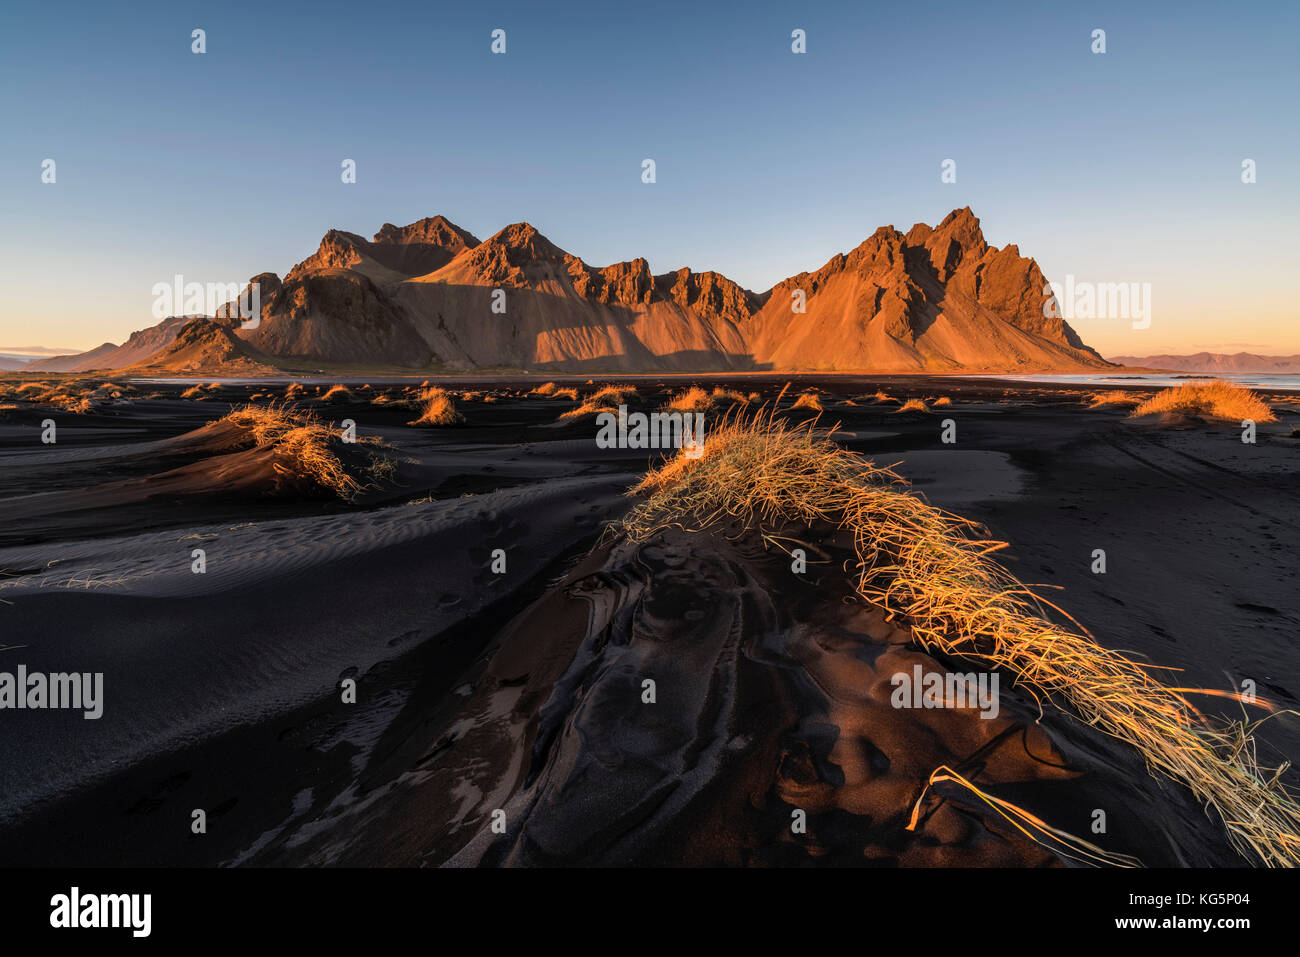 Stokksnes, Hofn, Eastern Iceland, Iceland. Vestrahorn mountain and the black sand dunes at sunset. Stock Photo